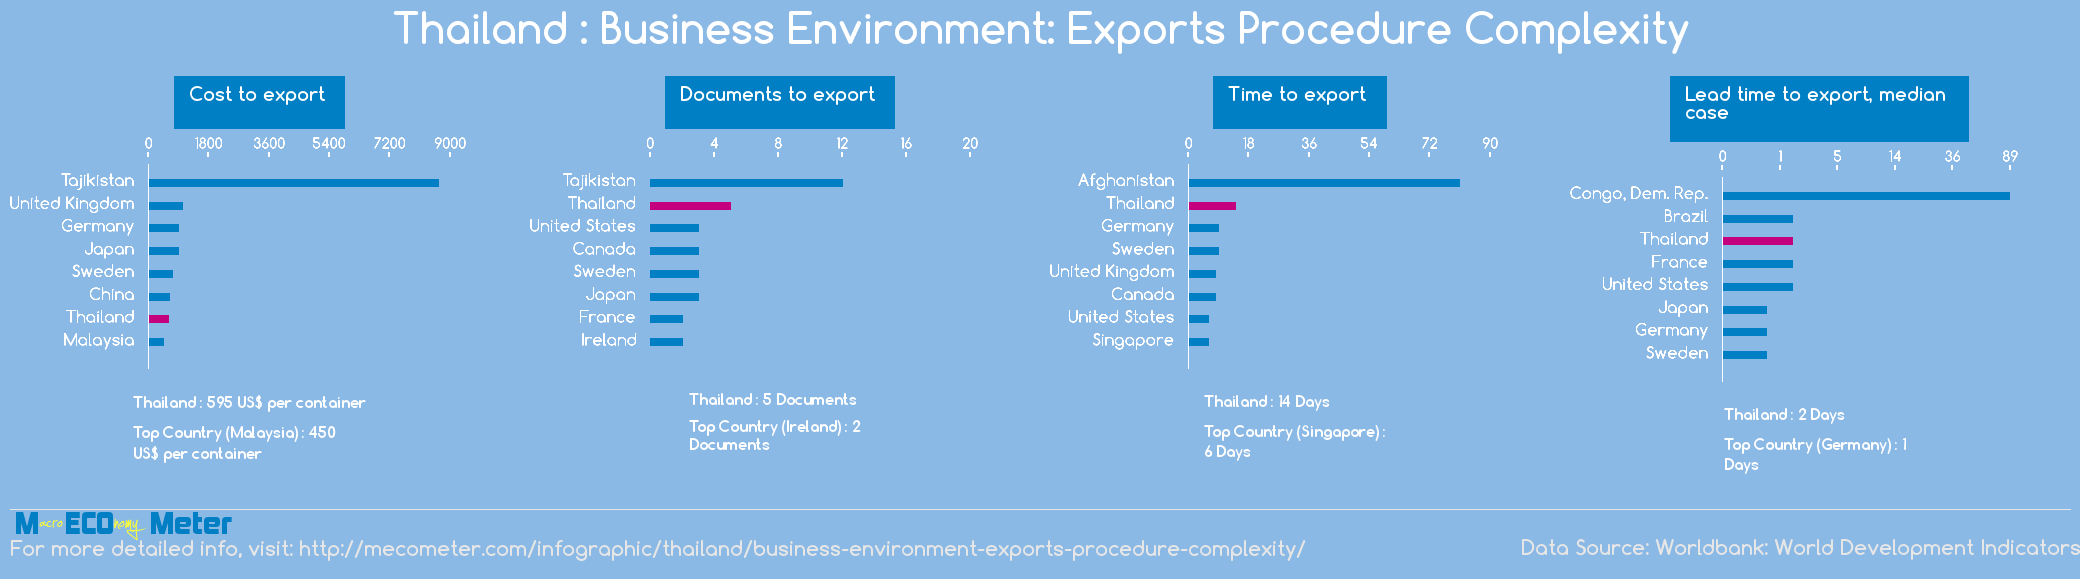 Thailand : Business Environment: Exports Procedure Complexity